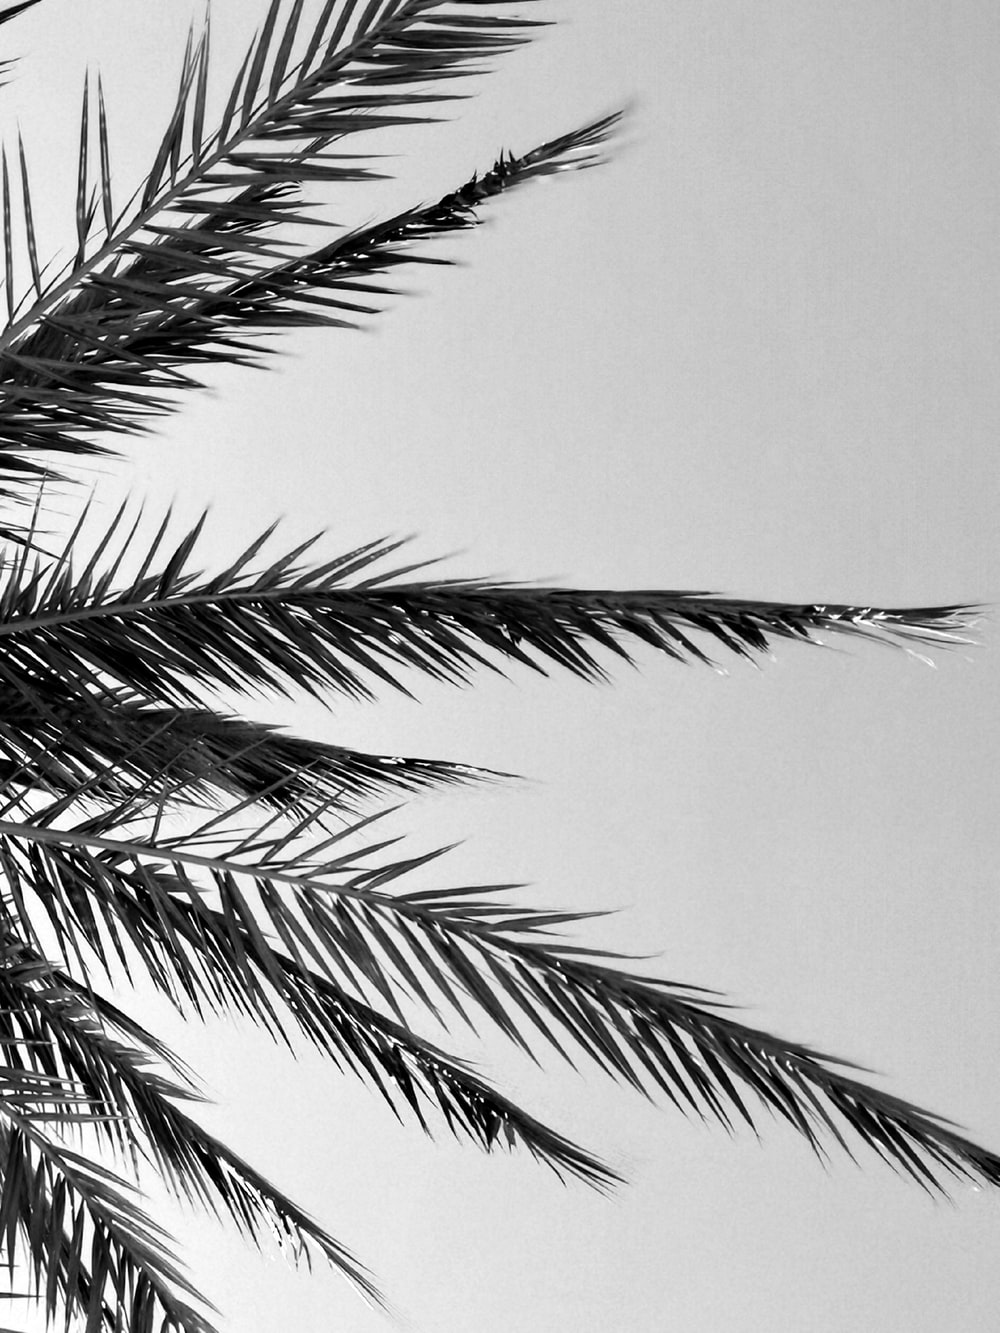 grayscale photography of coconut palm tree